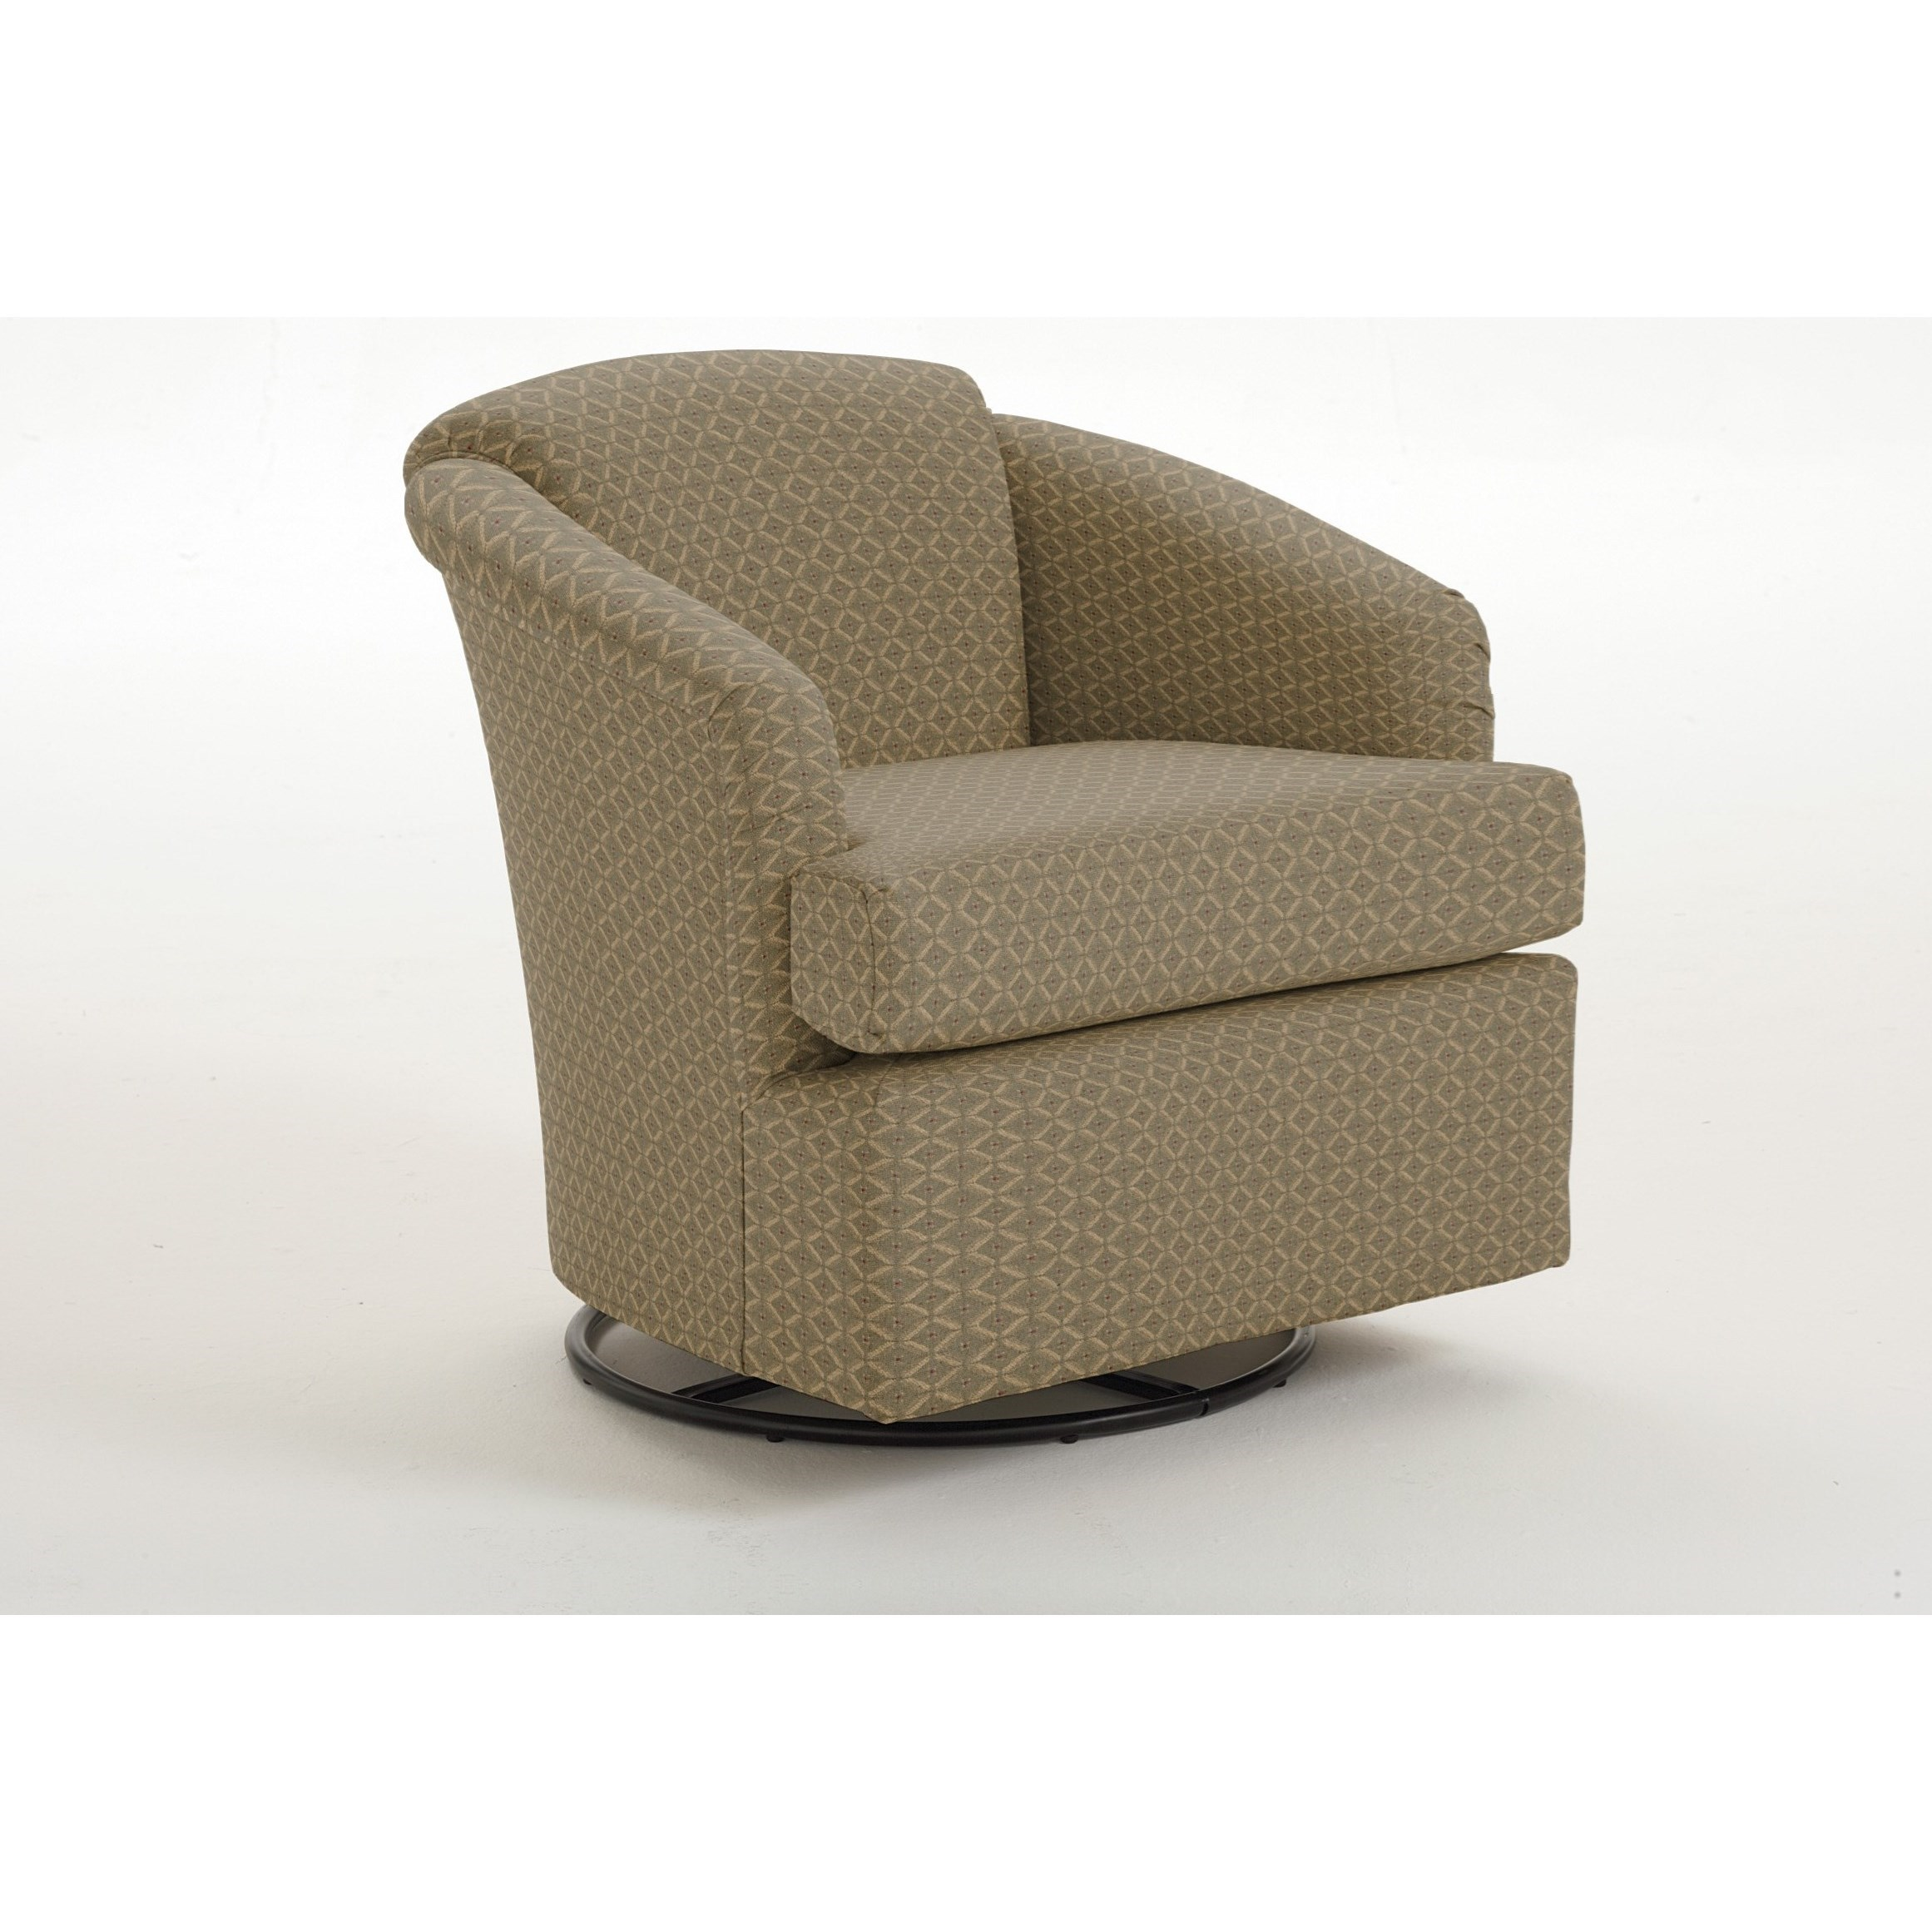 Cass Cass Swivel Glider by Best Home Furnishings at EFO Furniture Outlet